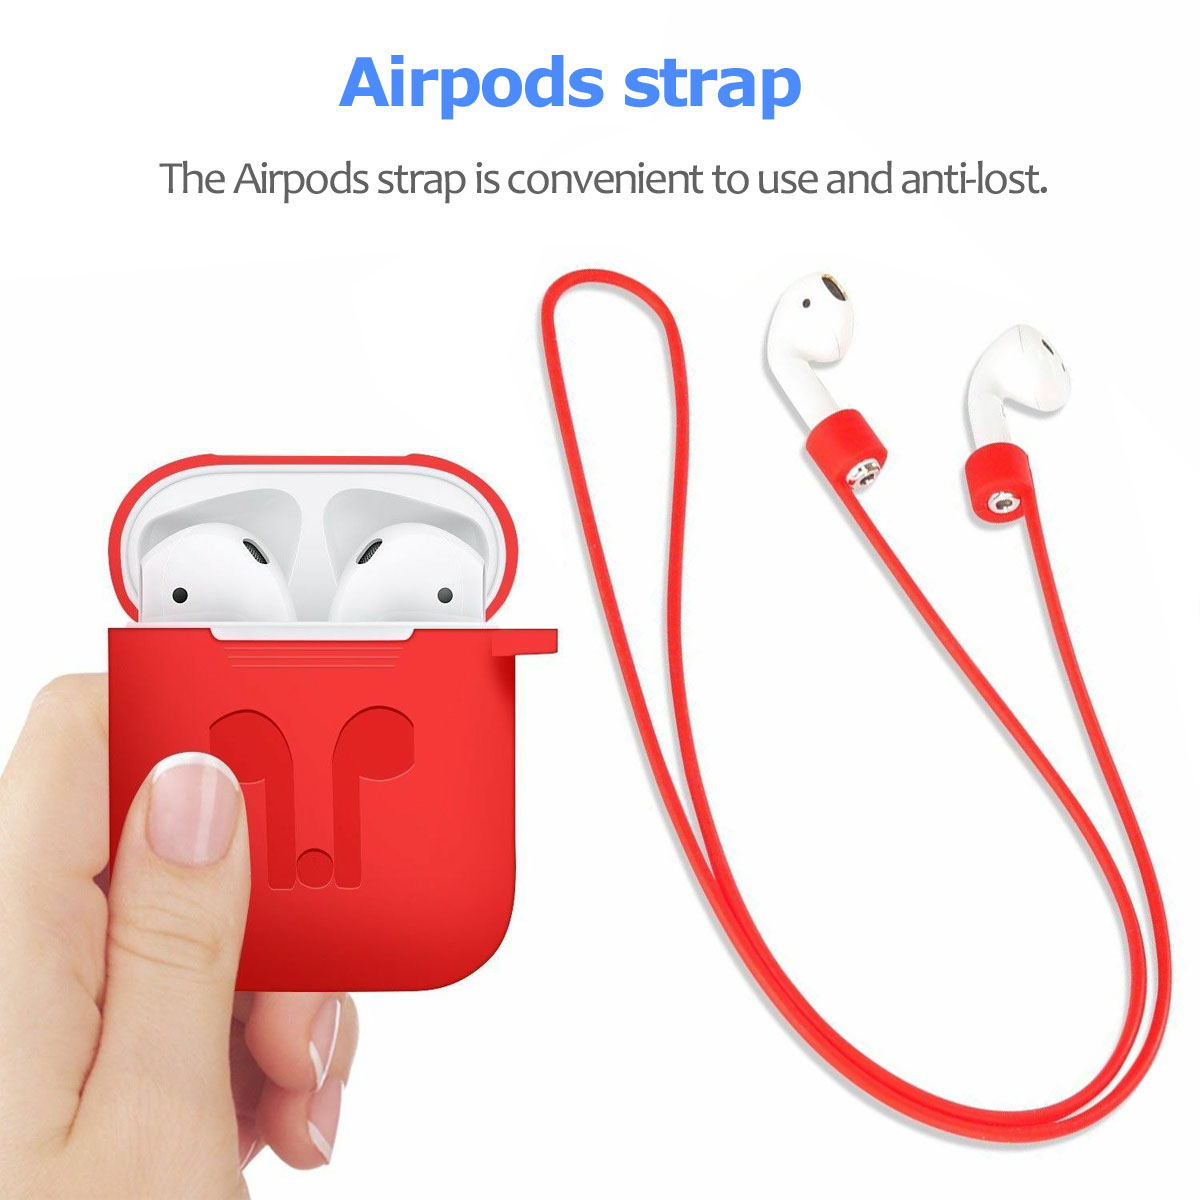 Silicone-Ruggged-Case-Cover-Earbuds-For-Apple-AirPods-2nd-Gen-Accessories-2019 thumbnail 31